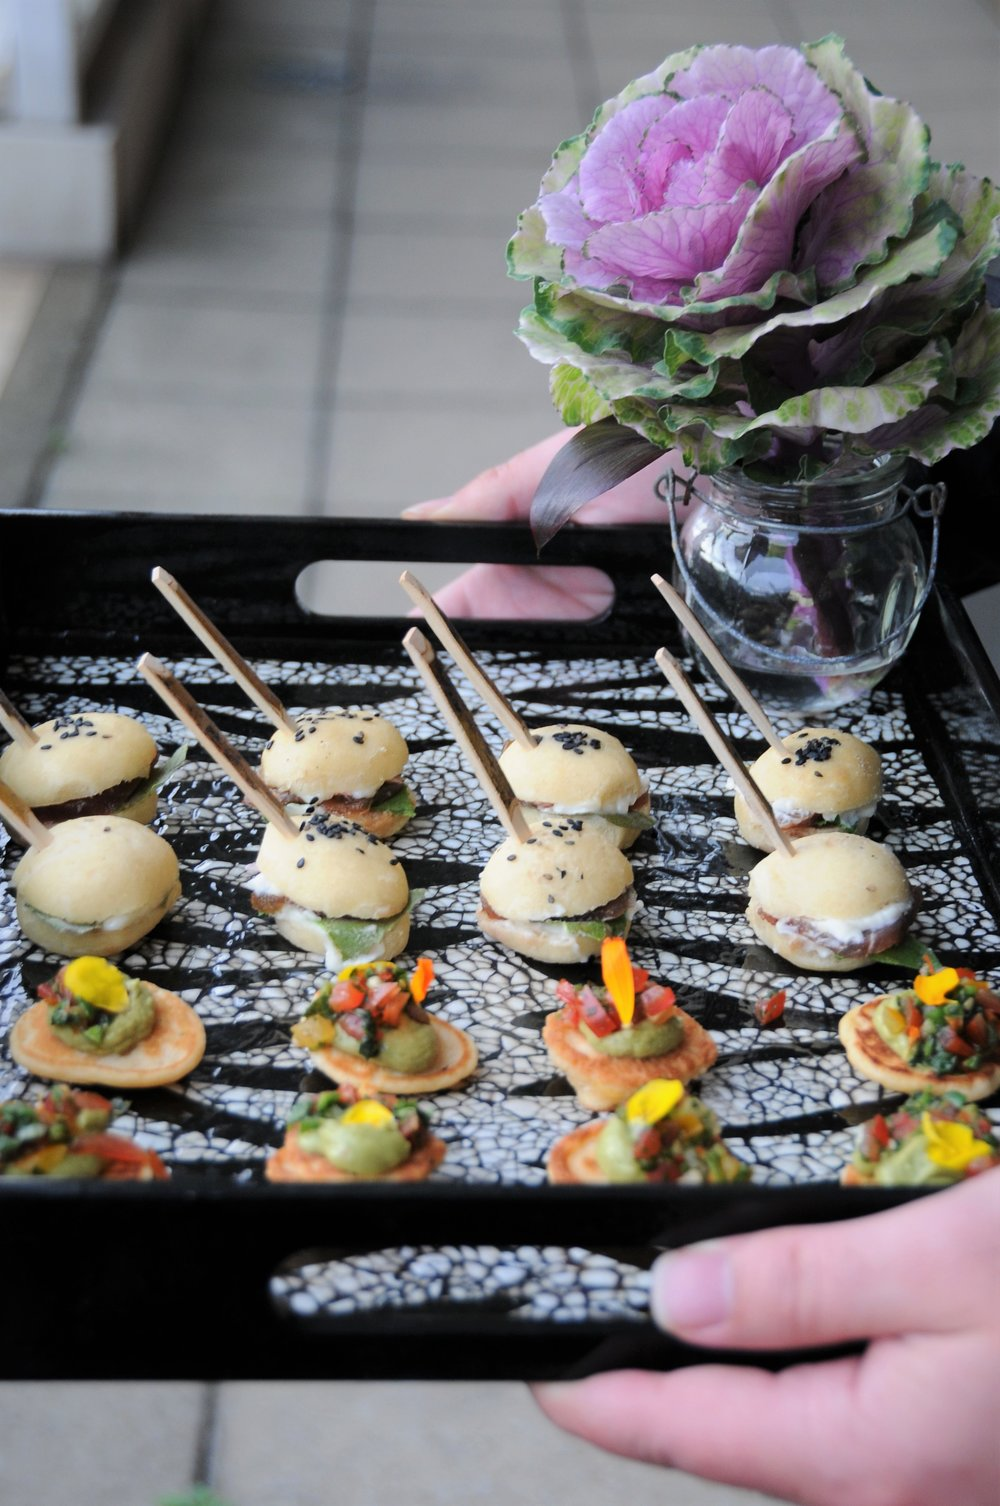 Canape selection with flowers